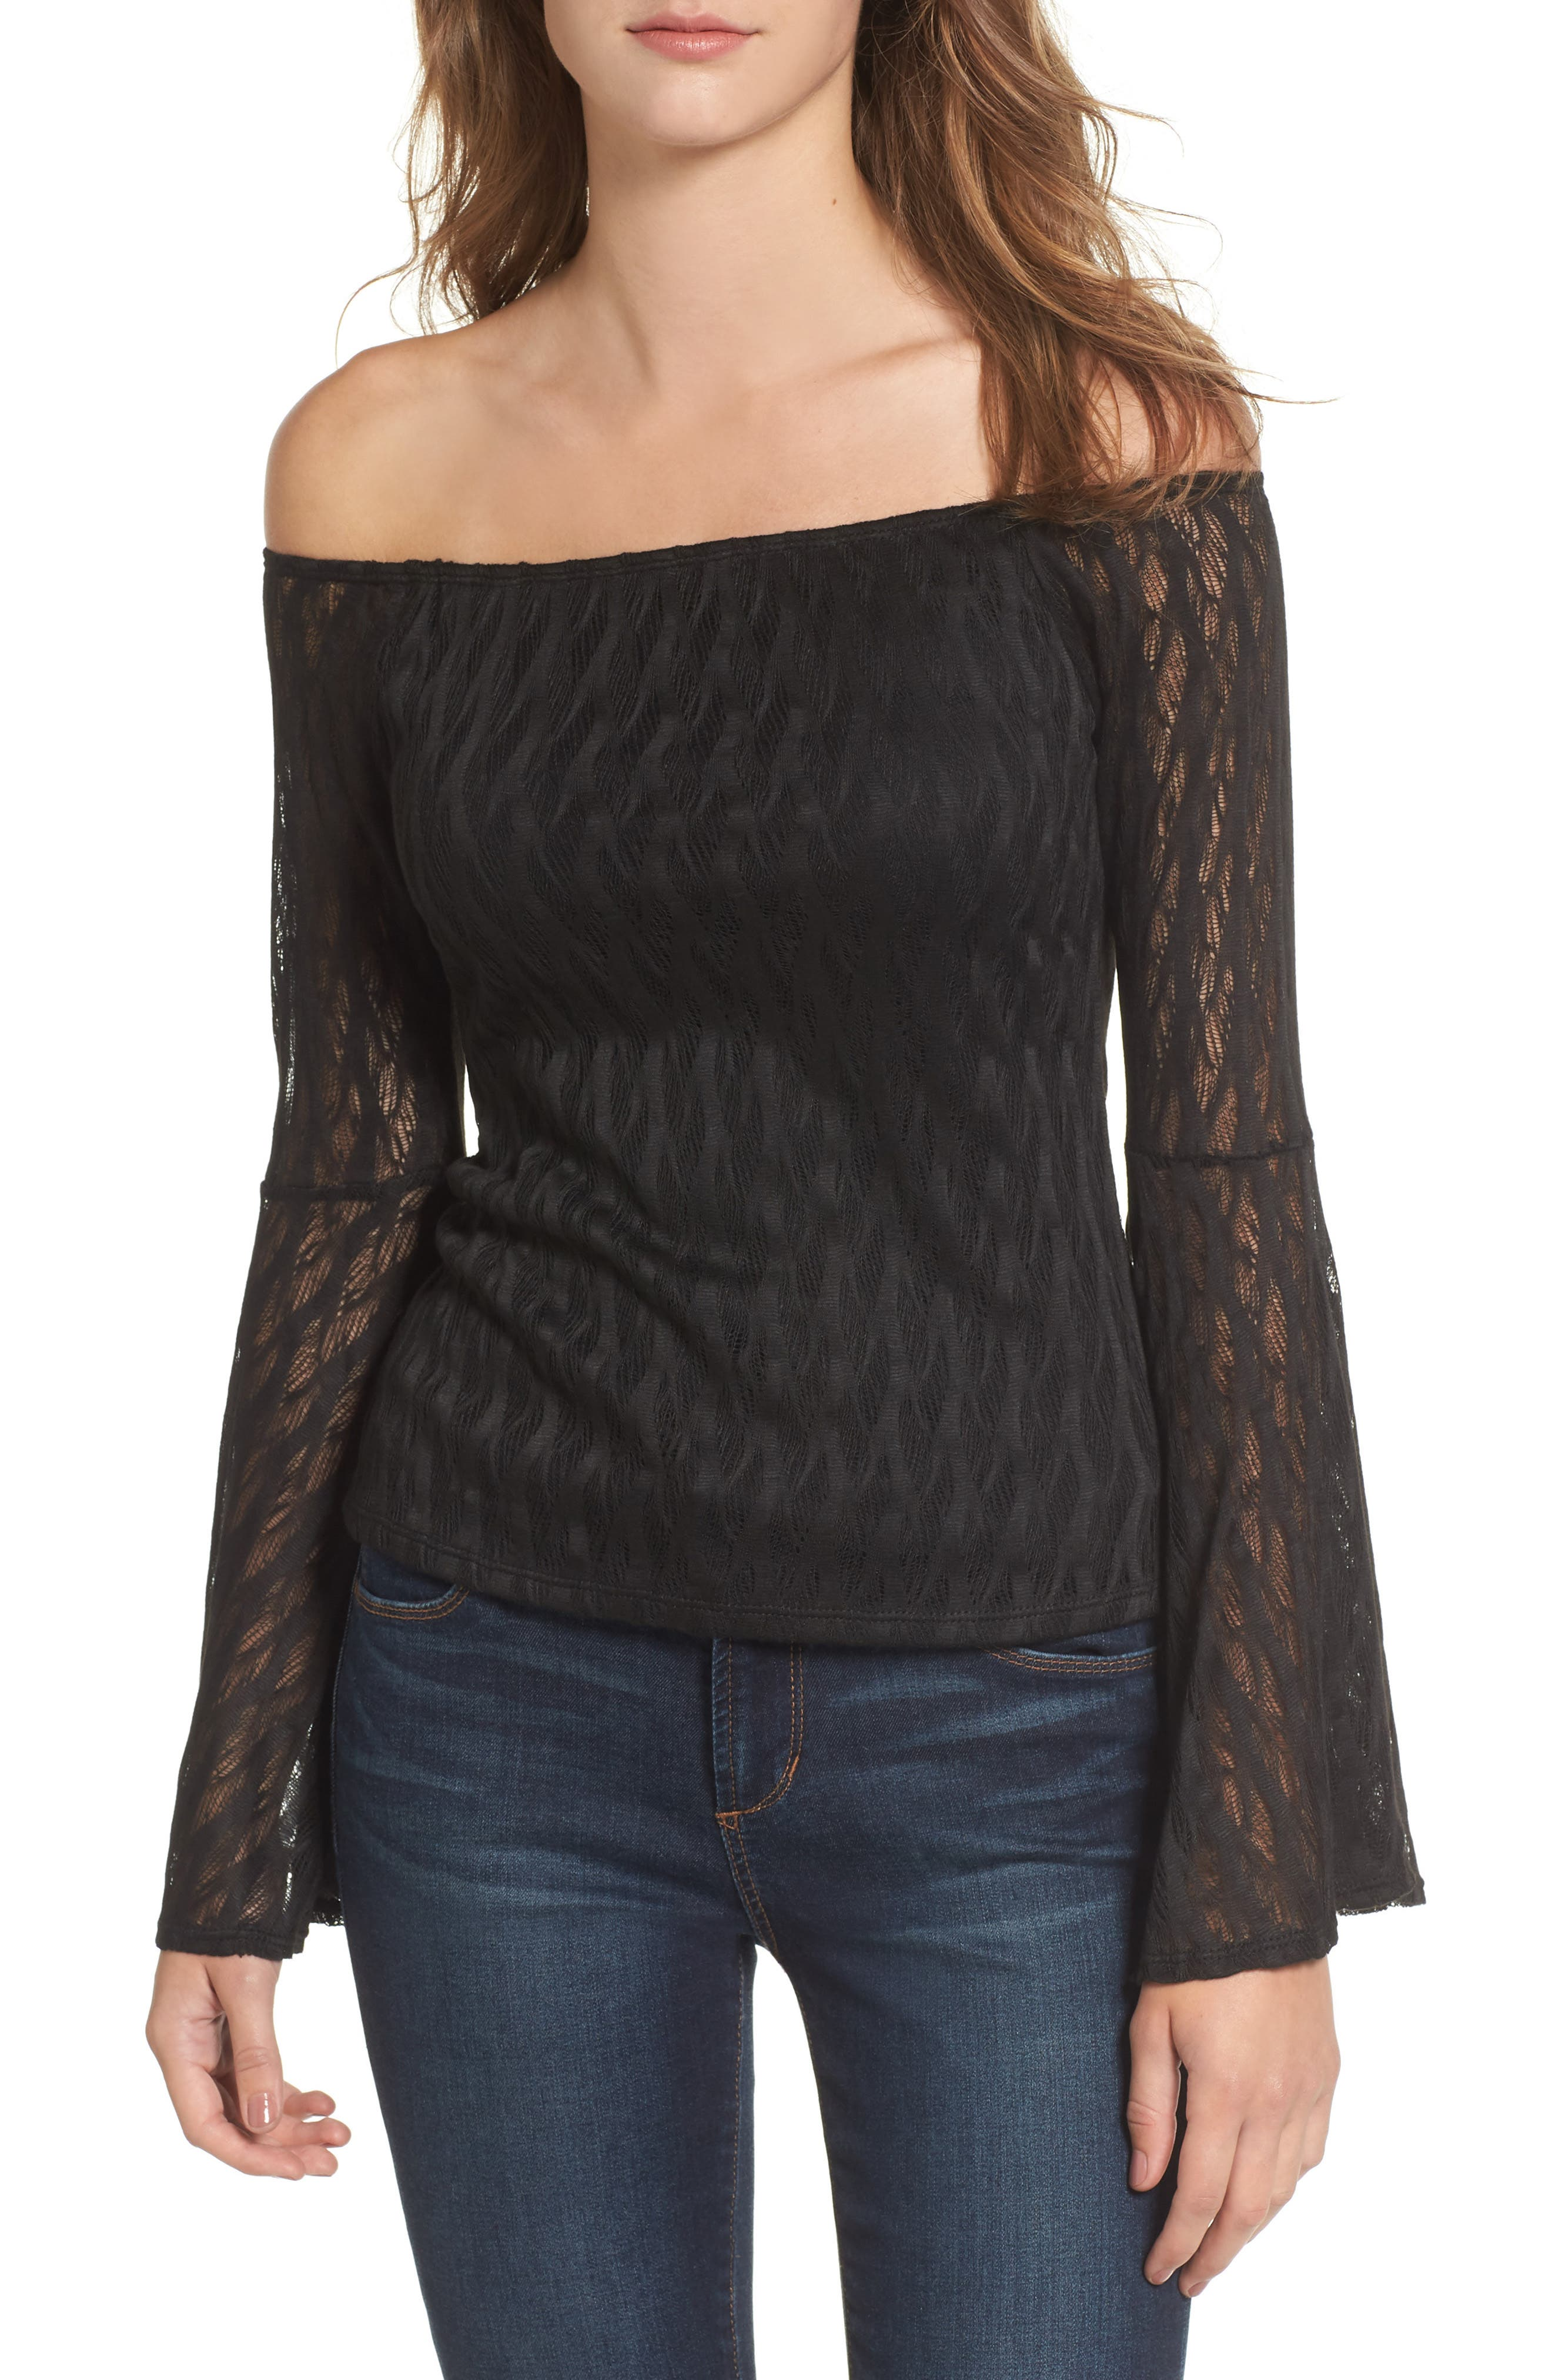 Bell Sleeve Off the Shoulder Top,                             Main thumbnail 1, color,                             001